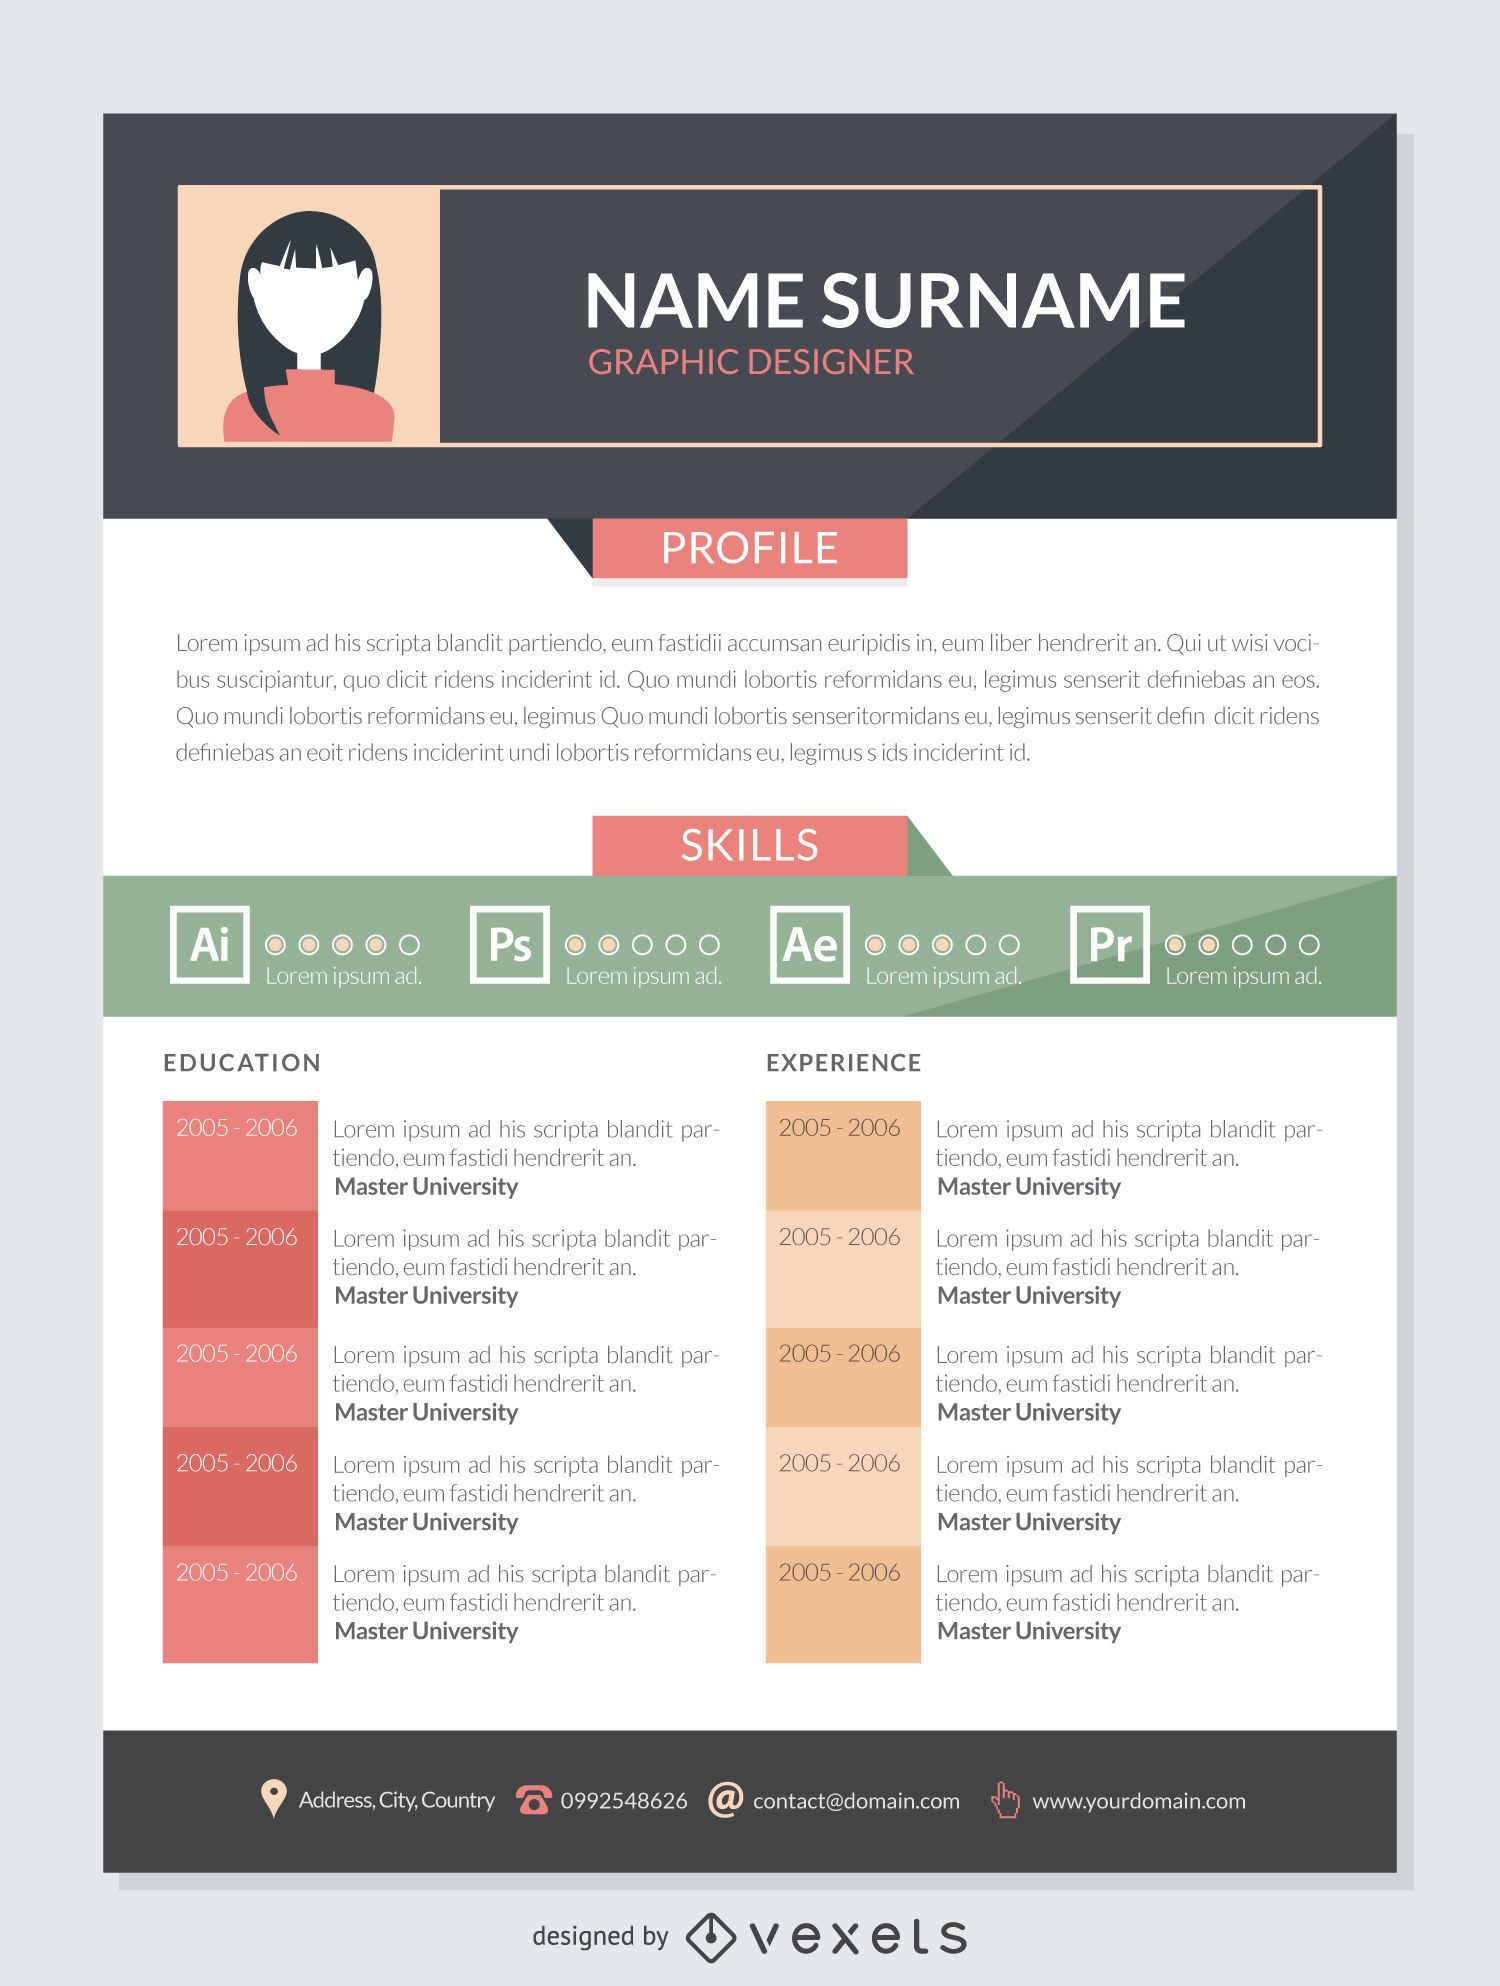 graphic designer resume mockup template download large image 1450x1920px - Graphic Designers Resumes